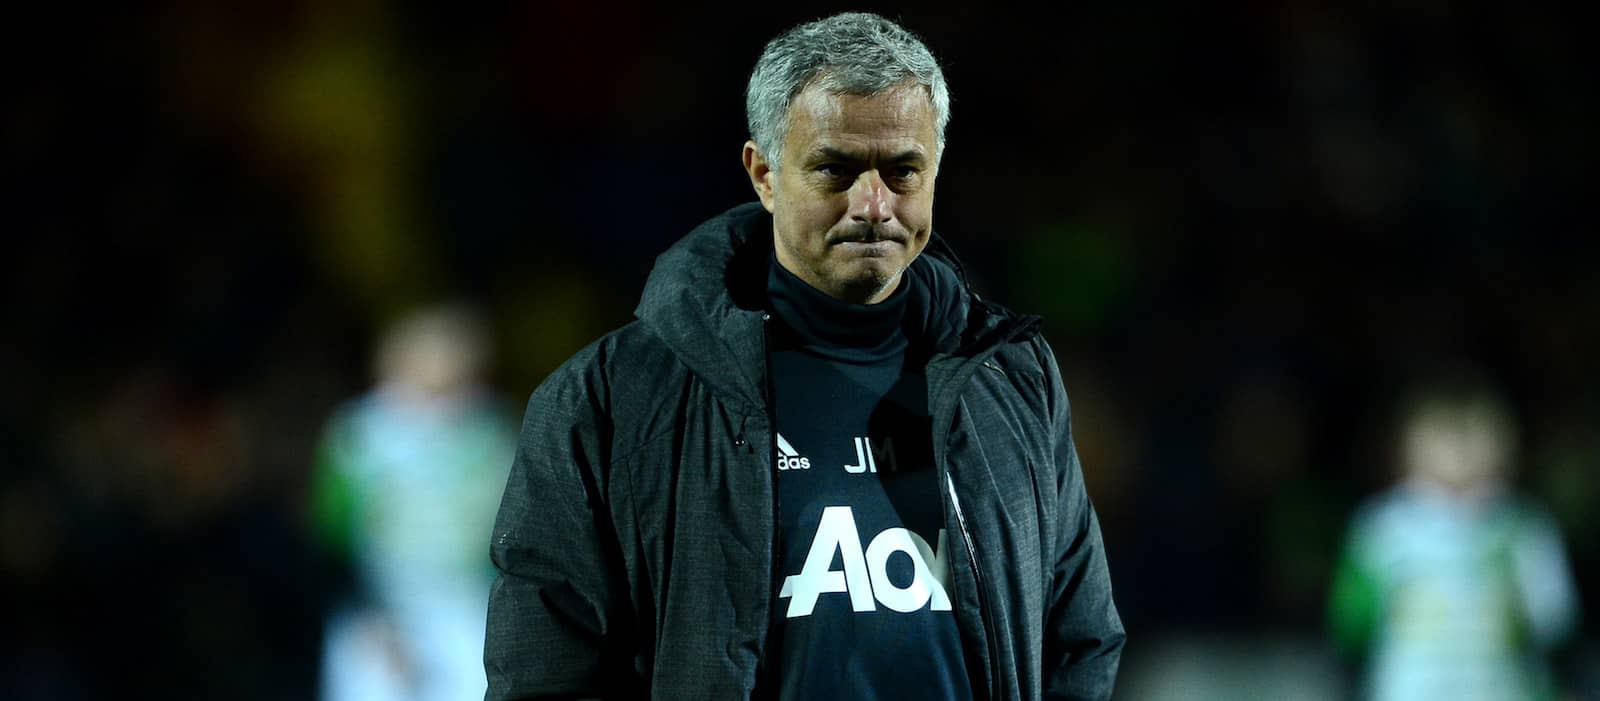 Jose Mourinho disappointed with how Manchester United conceded against Newcastle United